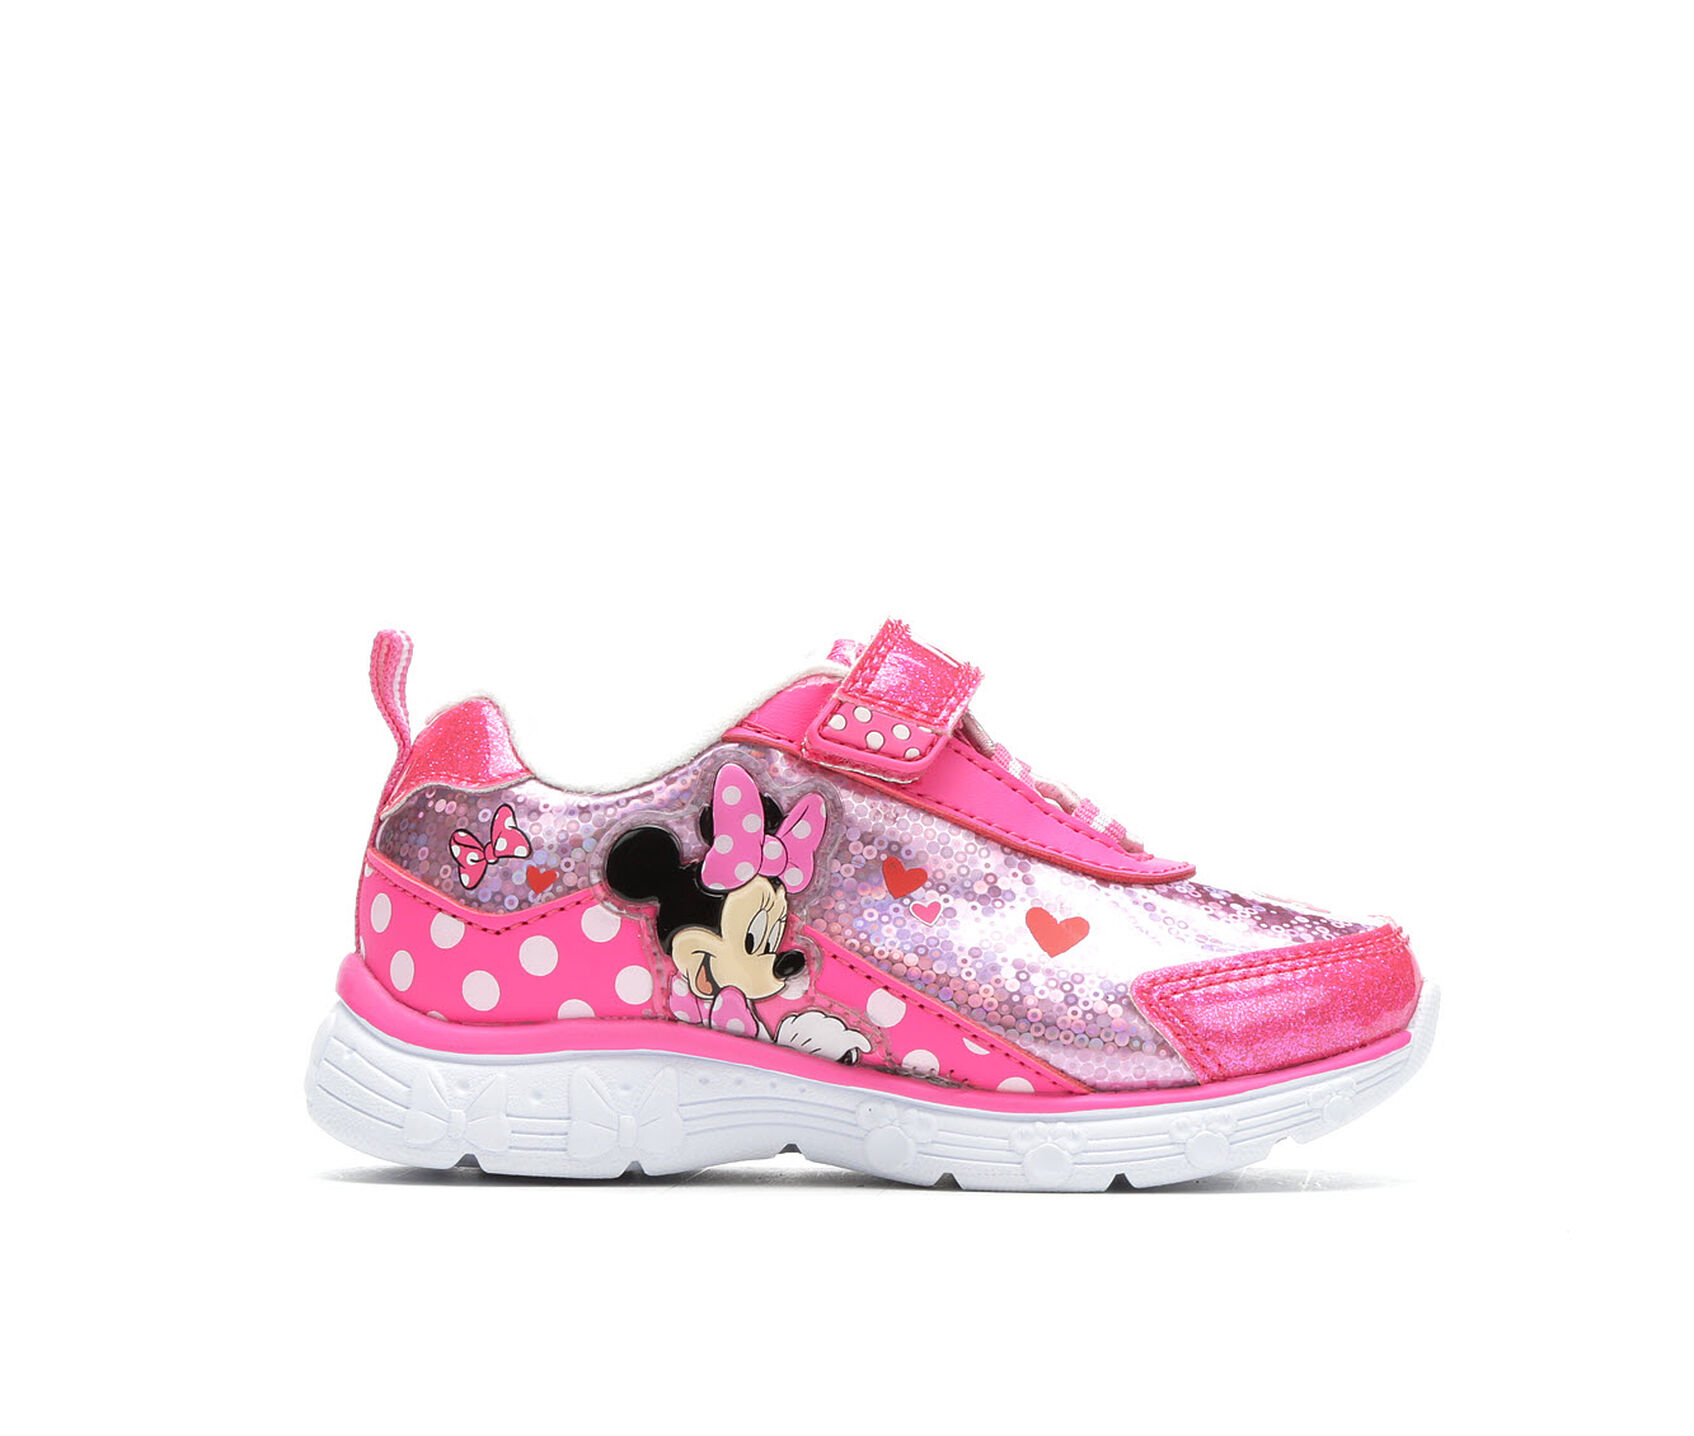 08fb749ead9 Girls' Disney Toddler & Little Kid Minnie Mouse Light-Up Sneakers